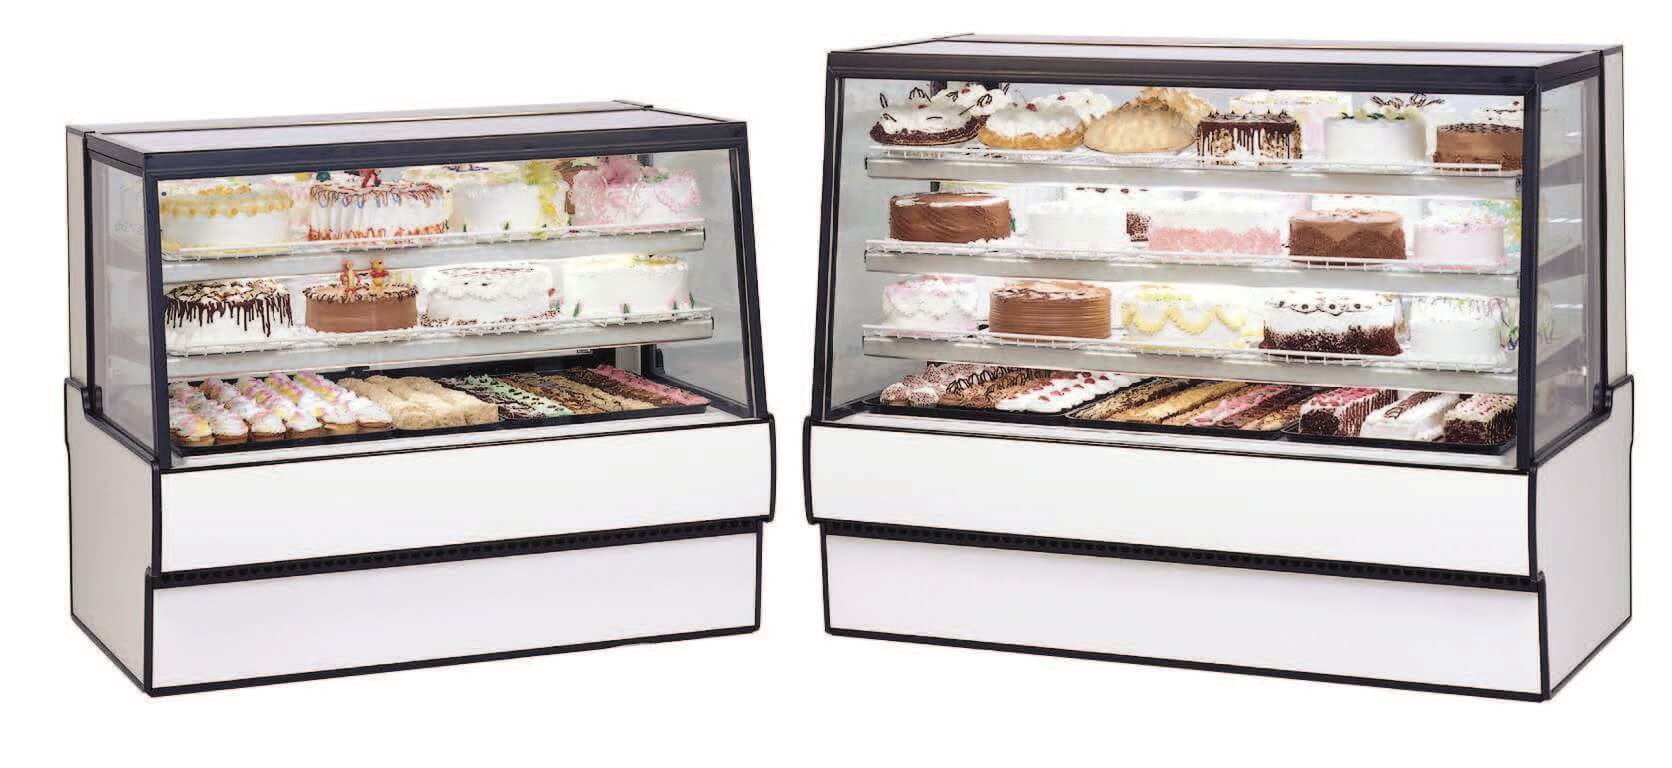 sgr3142-high-volume-refrigerated-bakery-case1